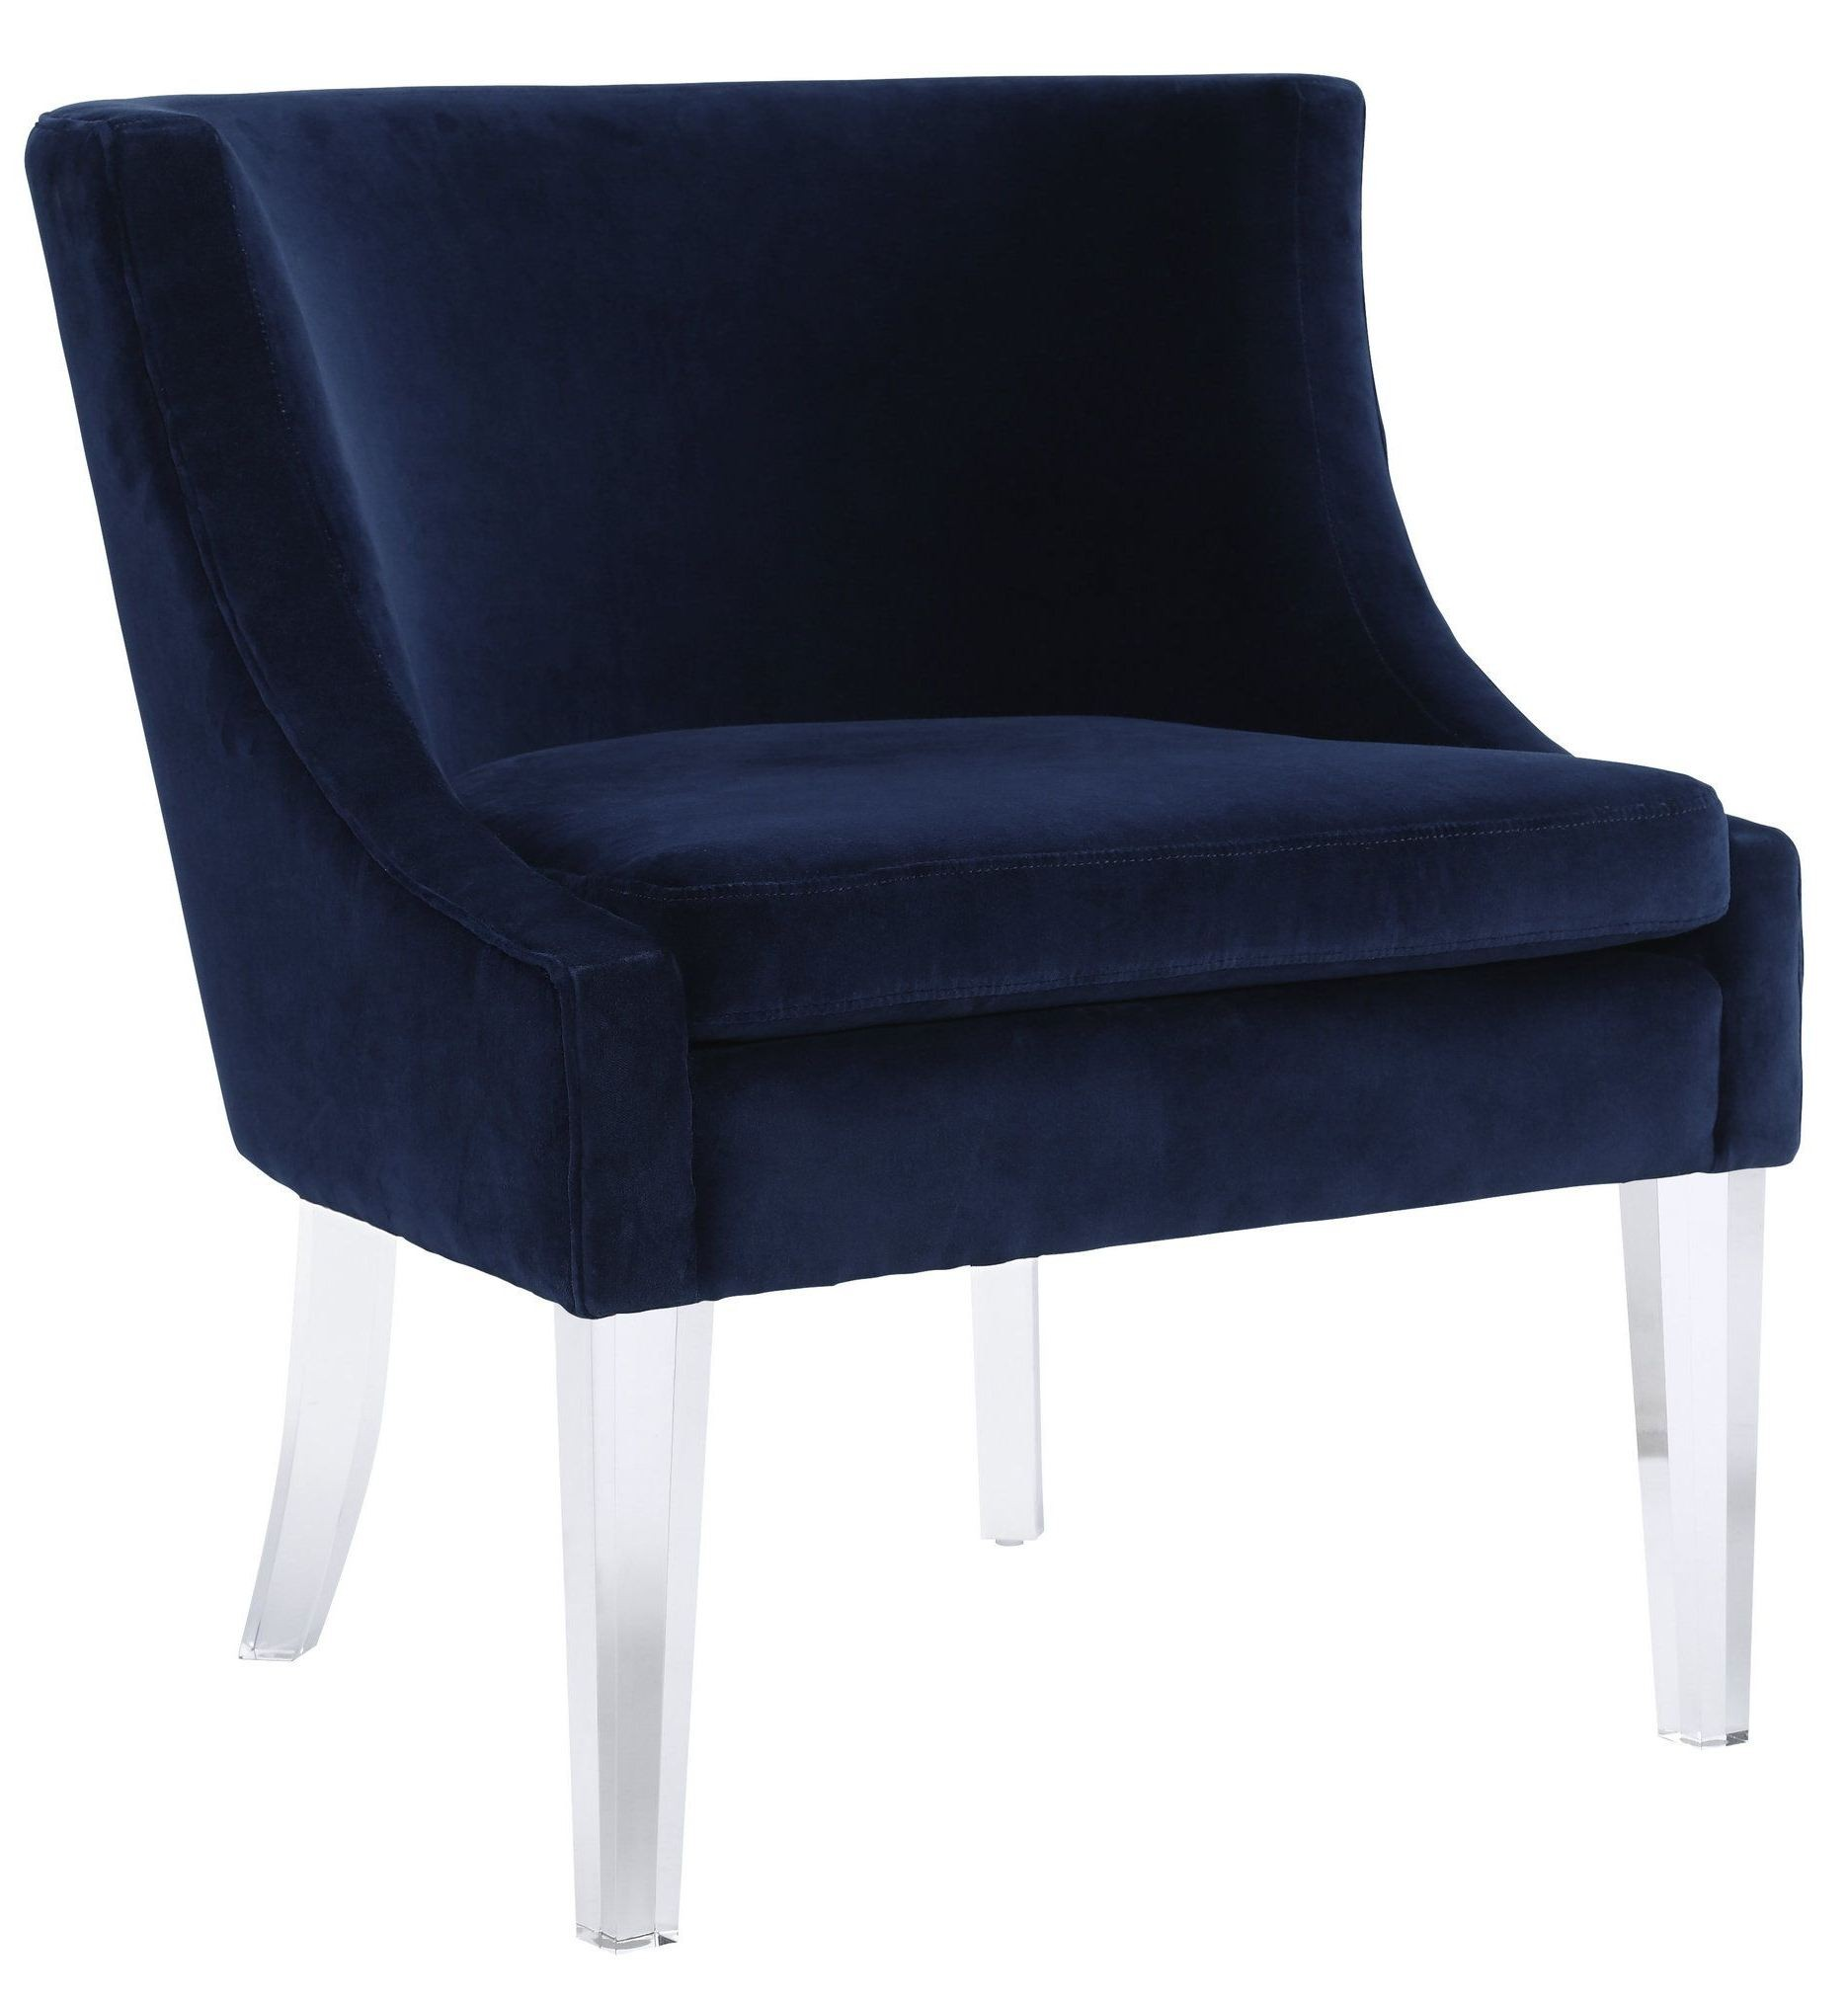 Blue Velvet Chair Myra Blue Velvet Chair From Tov Coleman Furniture